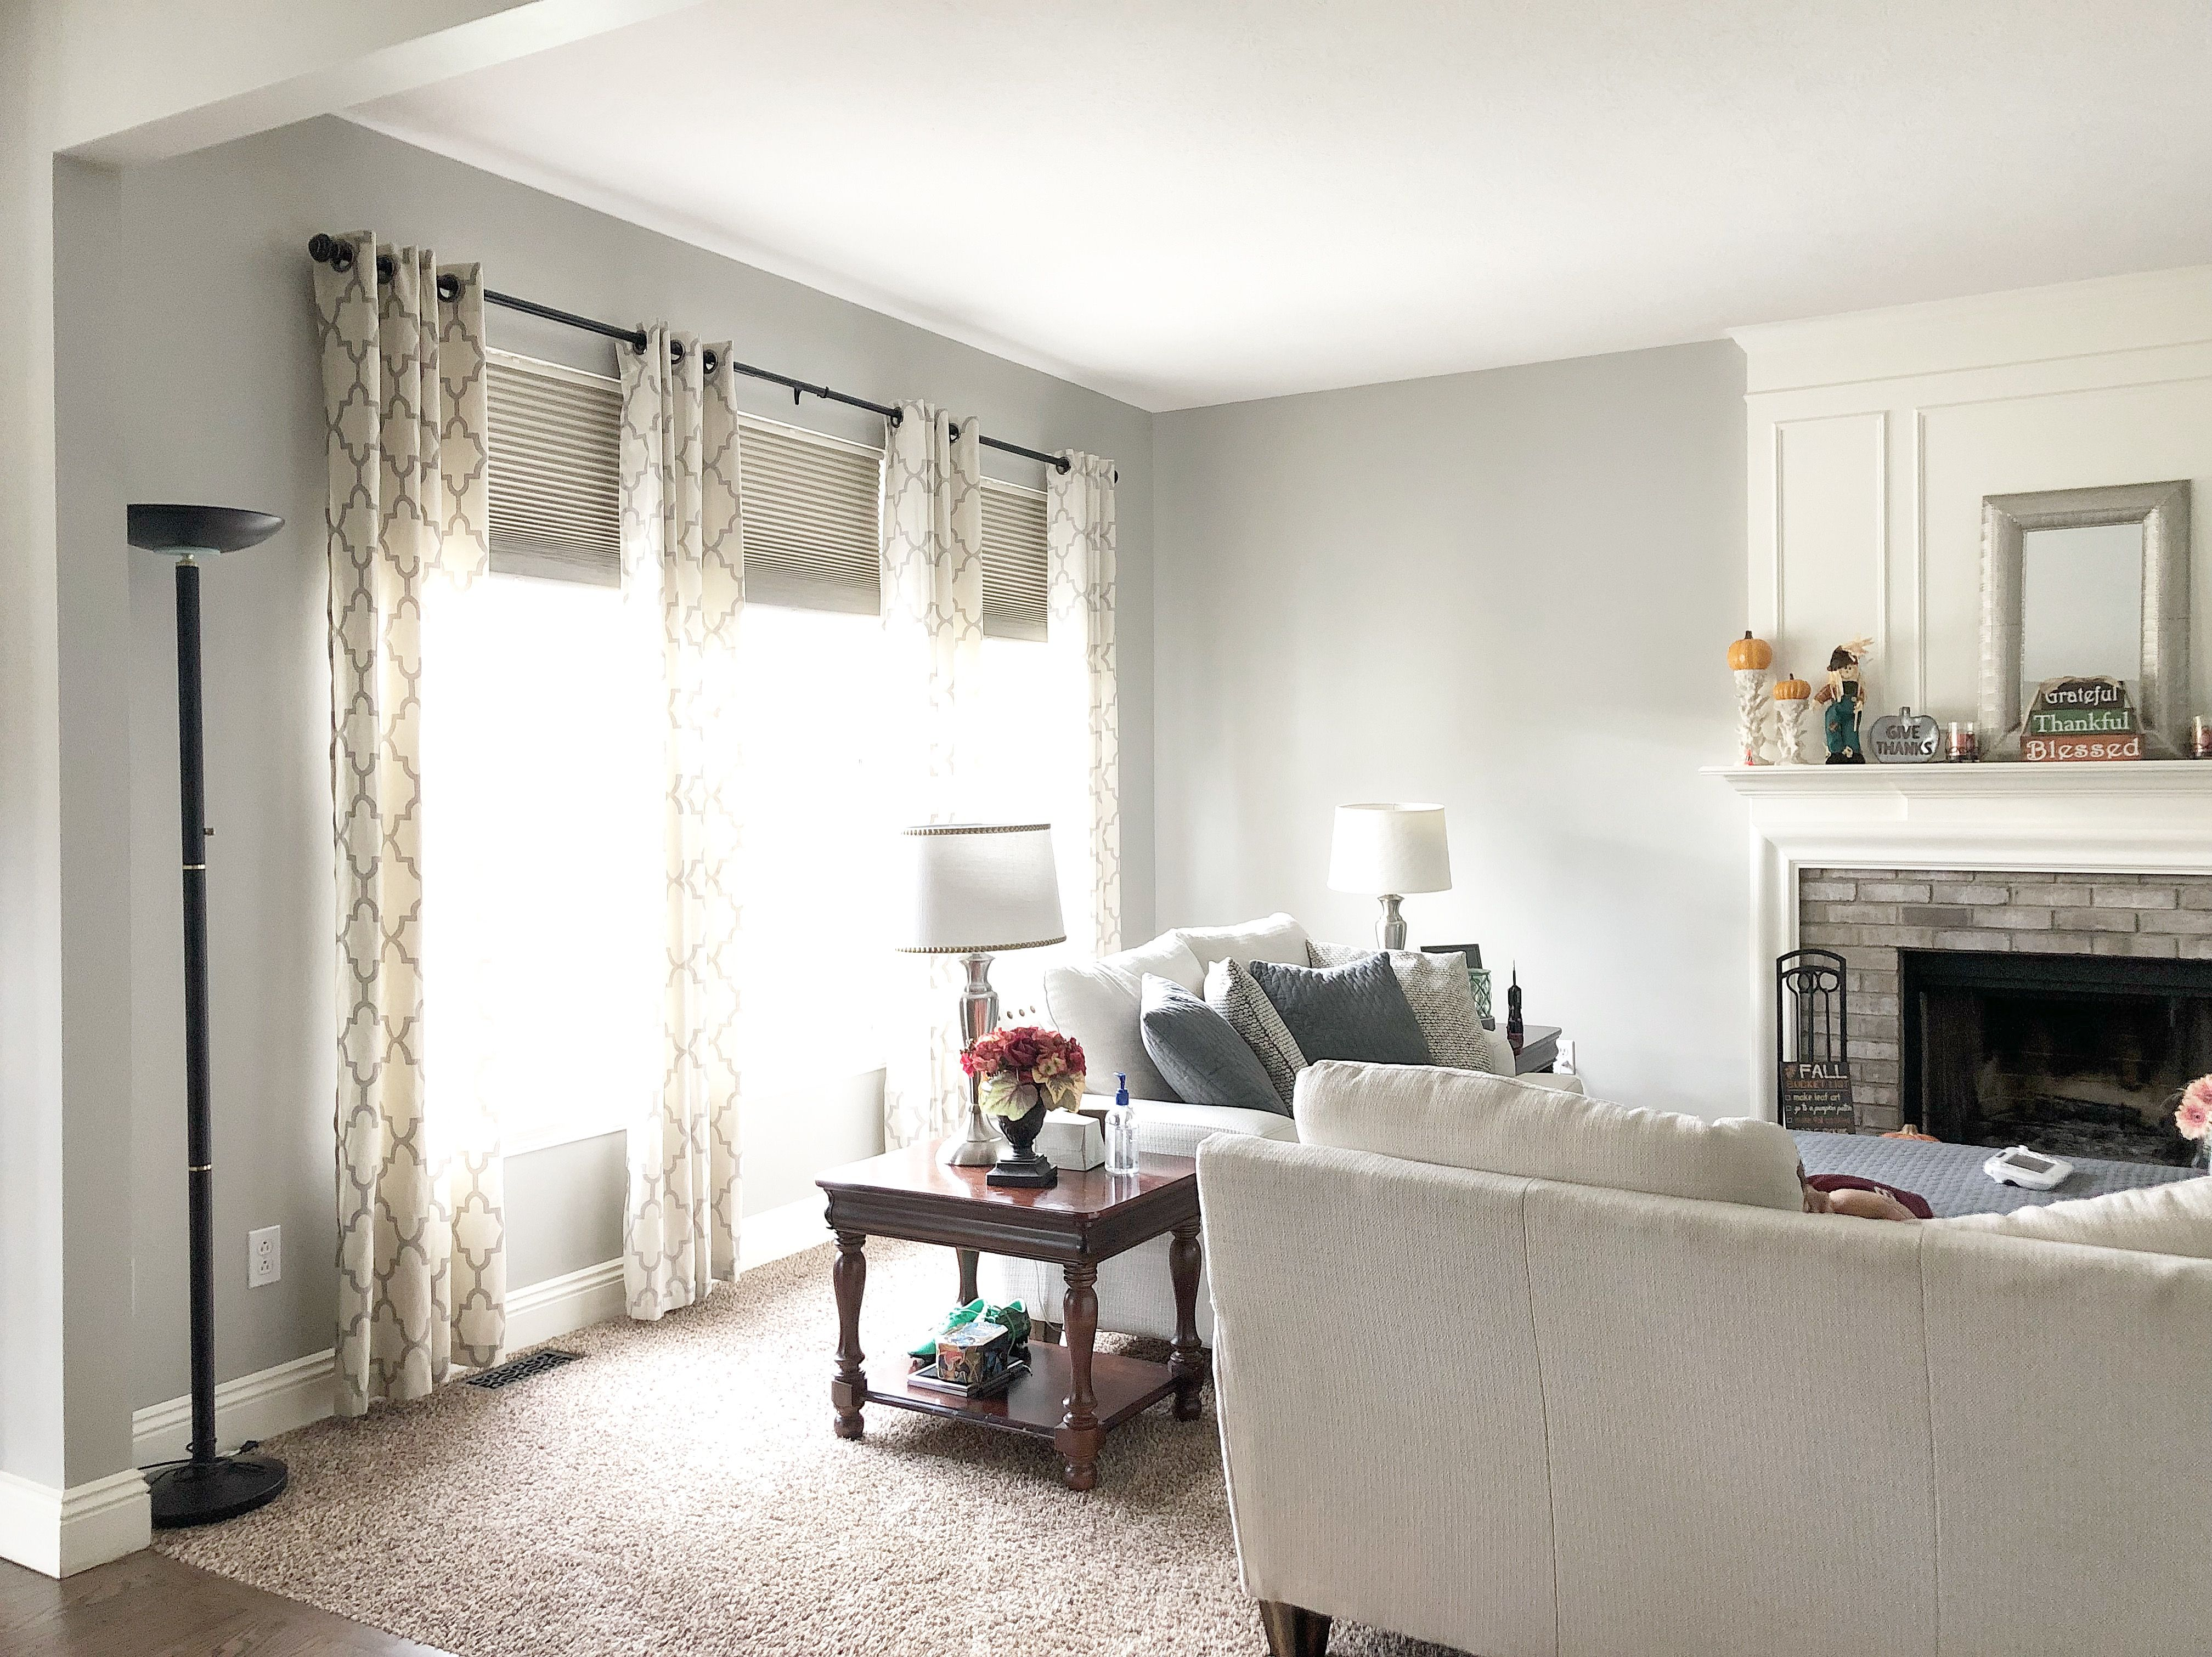 Sherwin Williams Mindful Gray In The Family Room Mindful Gray Sherwin Williams Mindful Gray Home Mindful gray living room